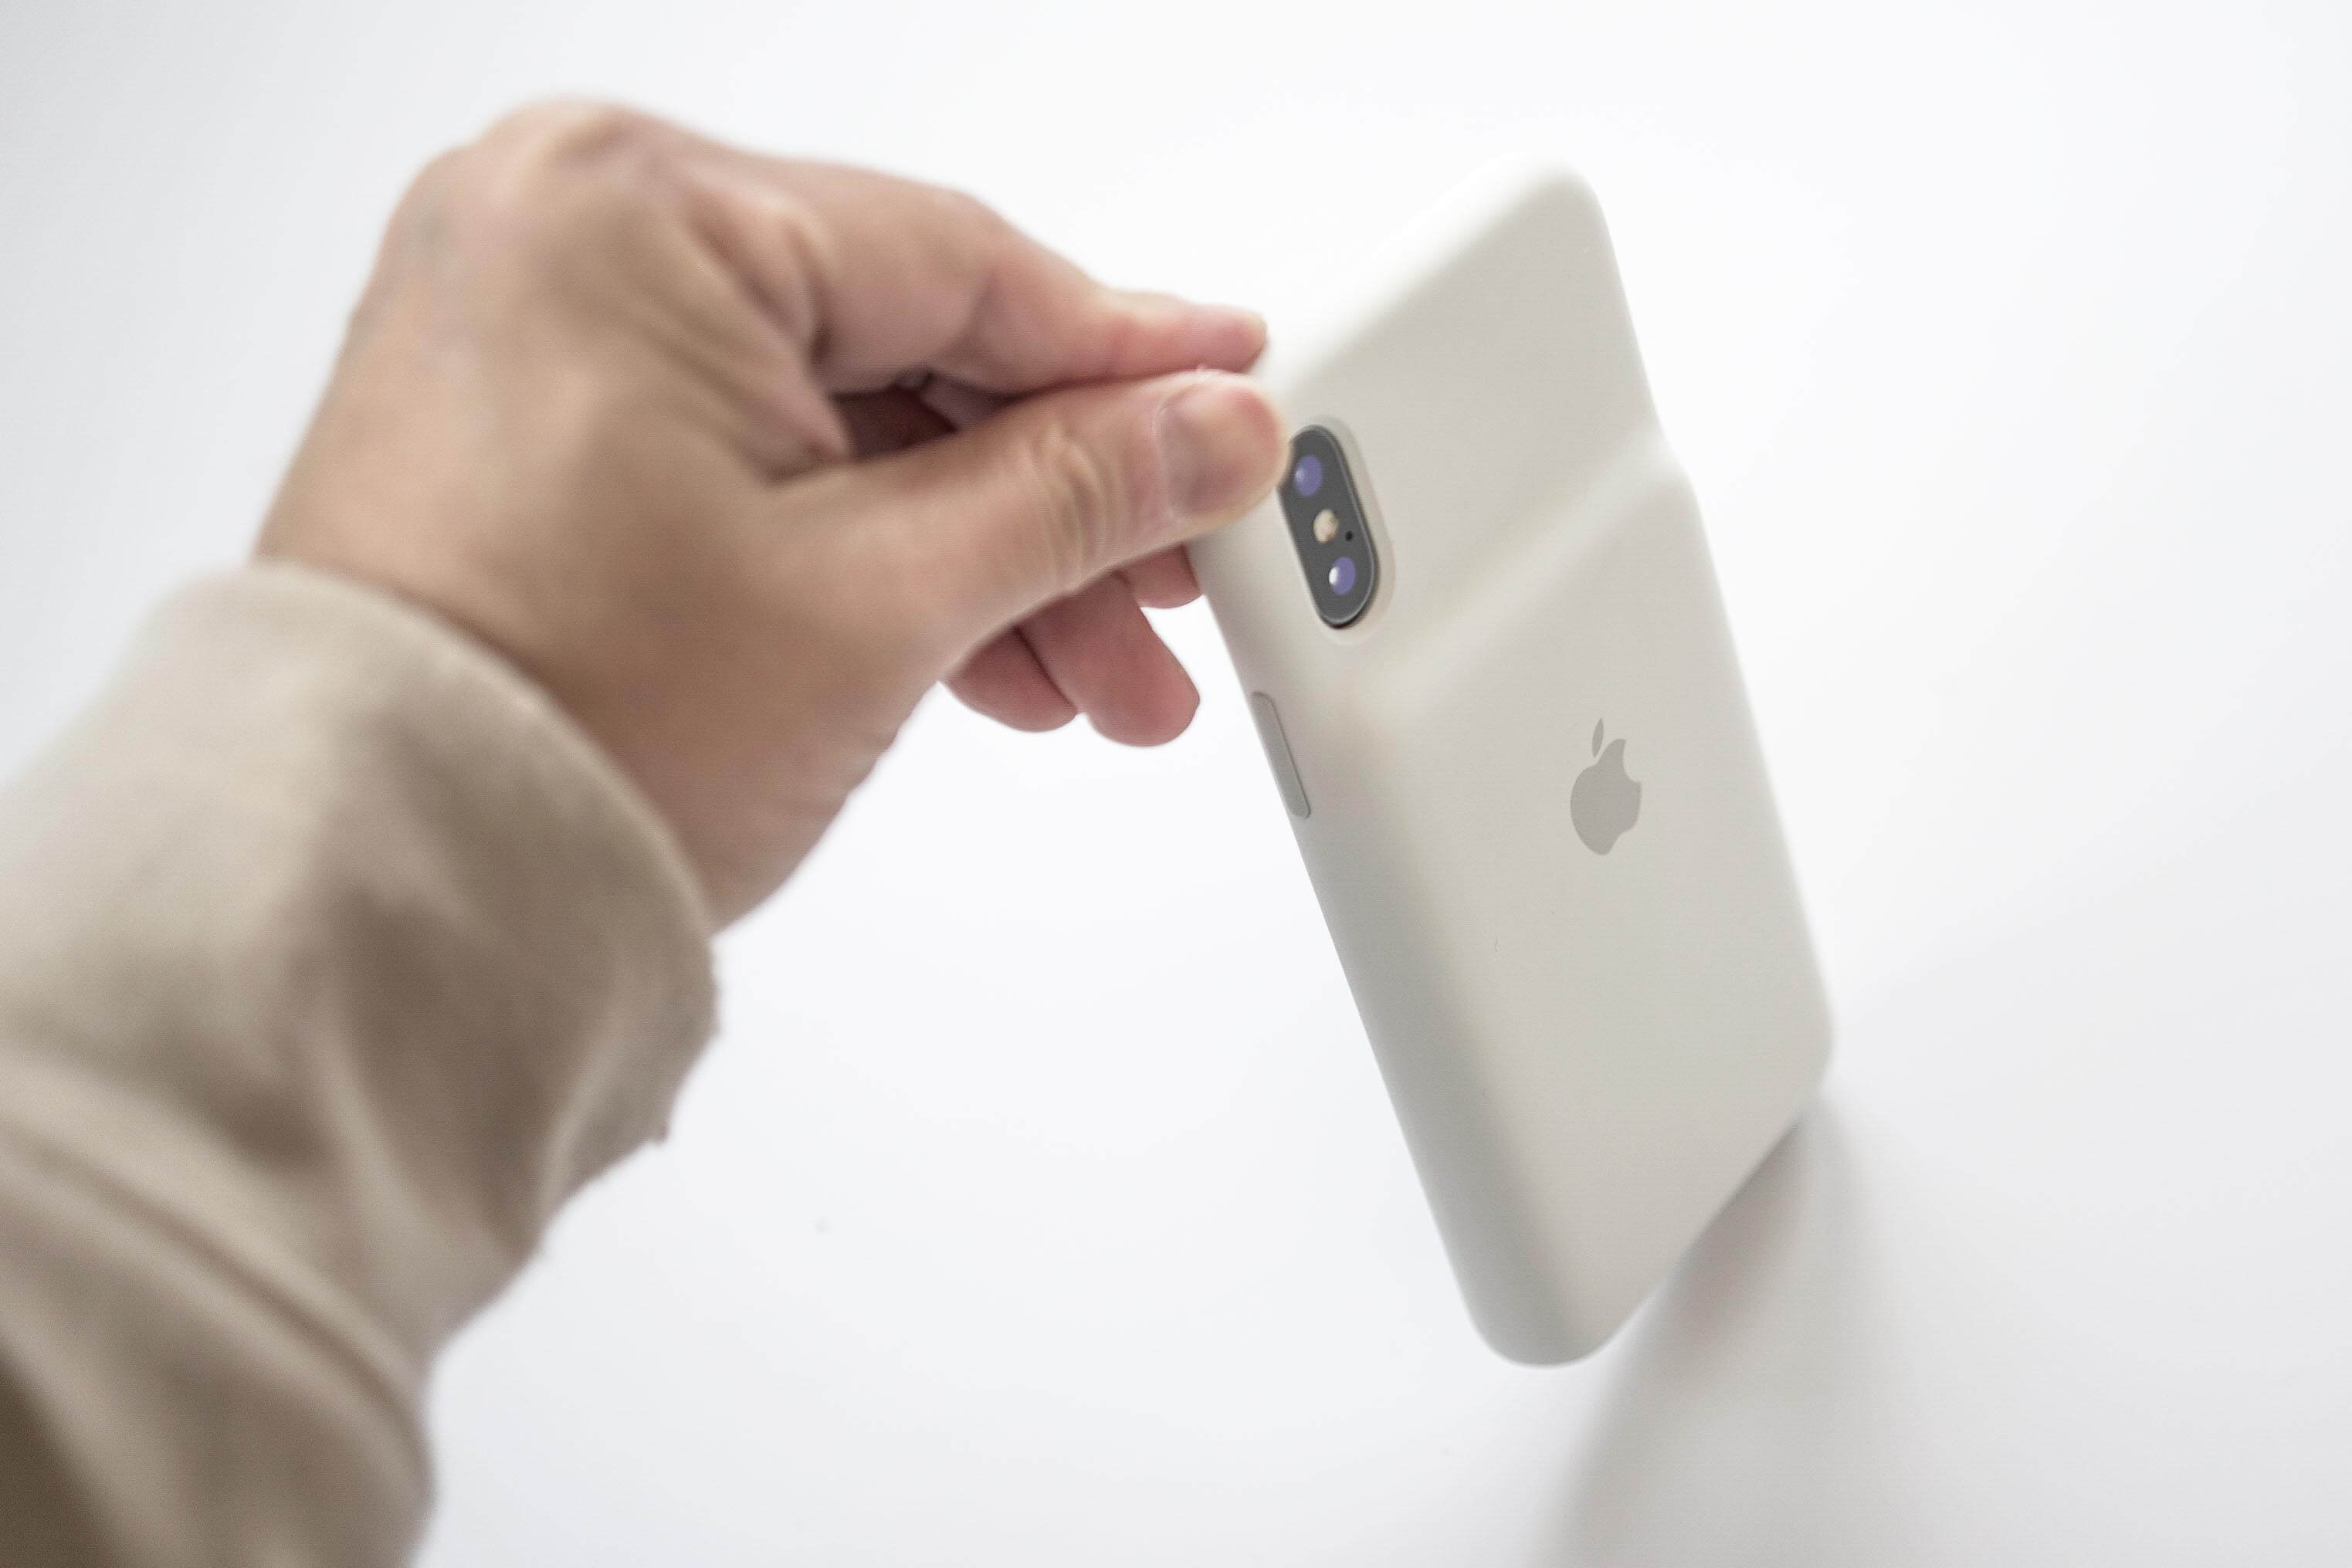 iPhone XS Smart Battery Case 9